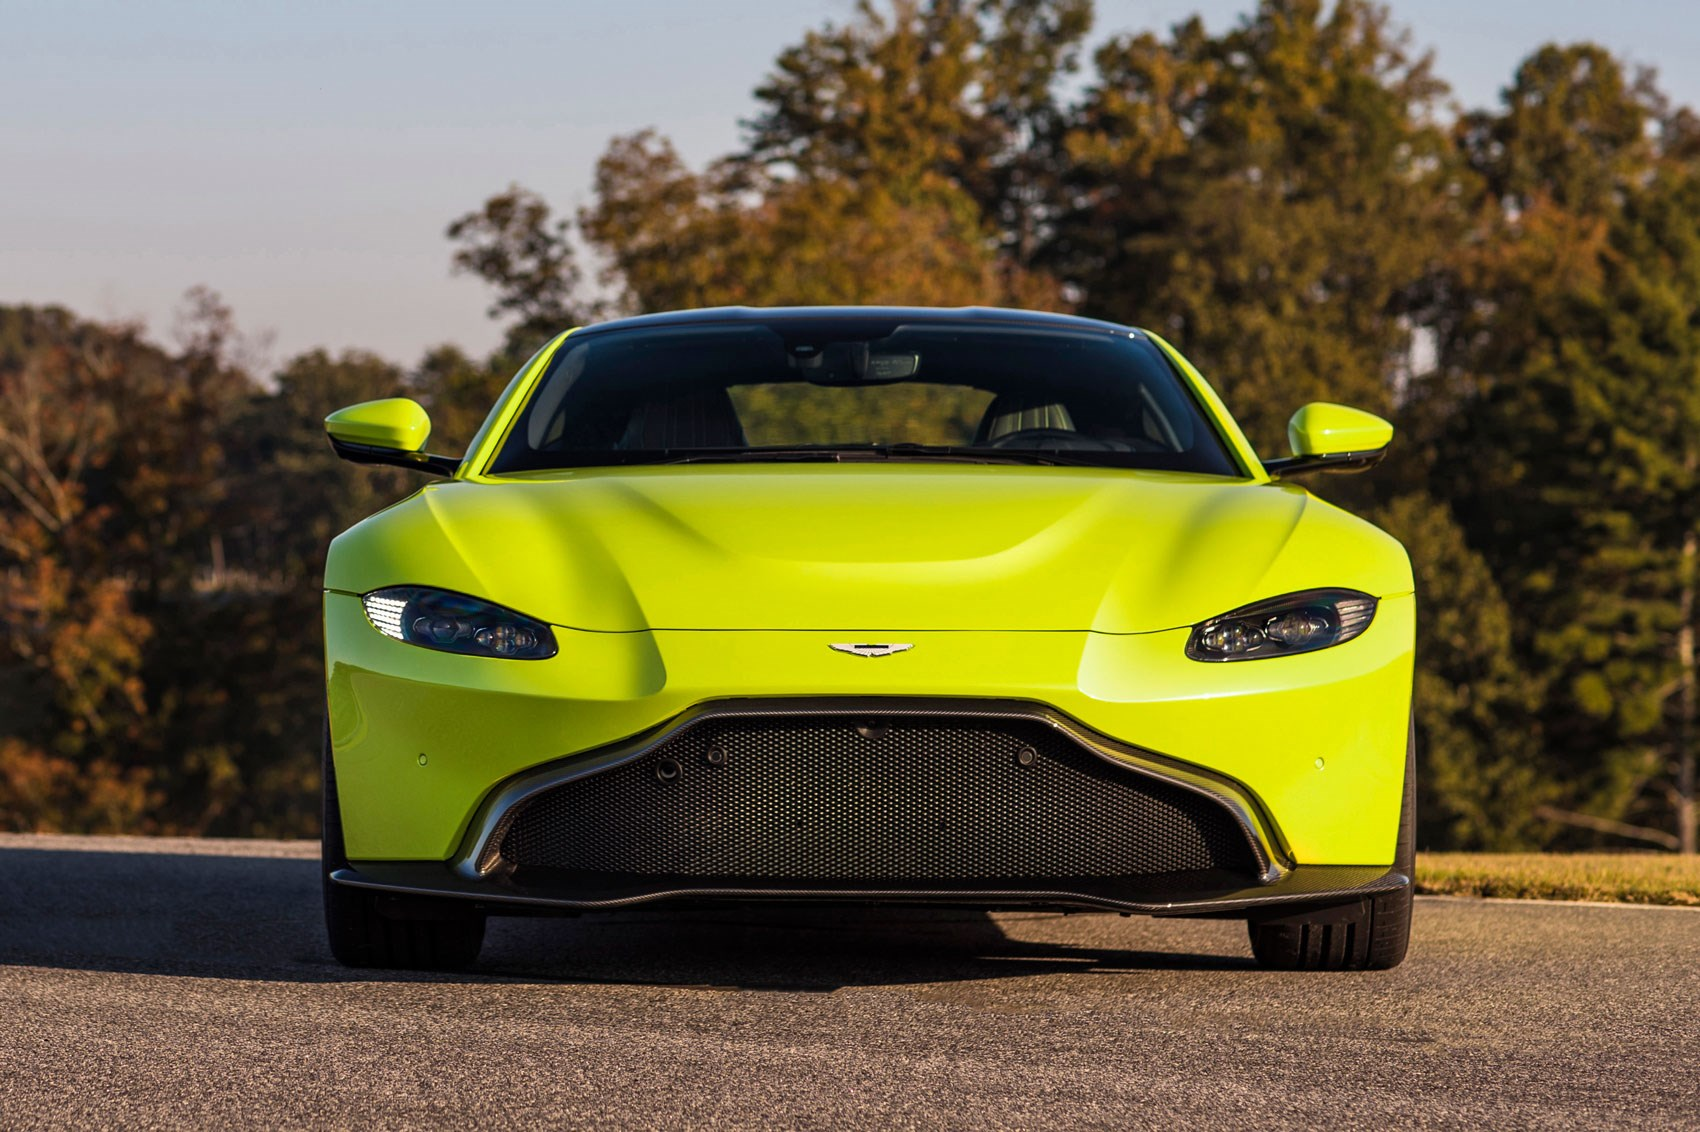 Inside The Cabin Of New 2018 Aston Martin Vantage: Yellow Trim Optional